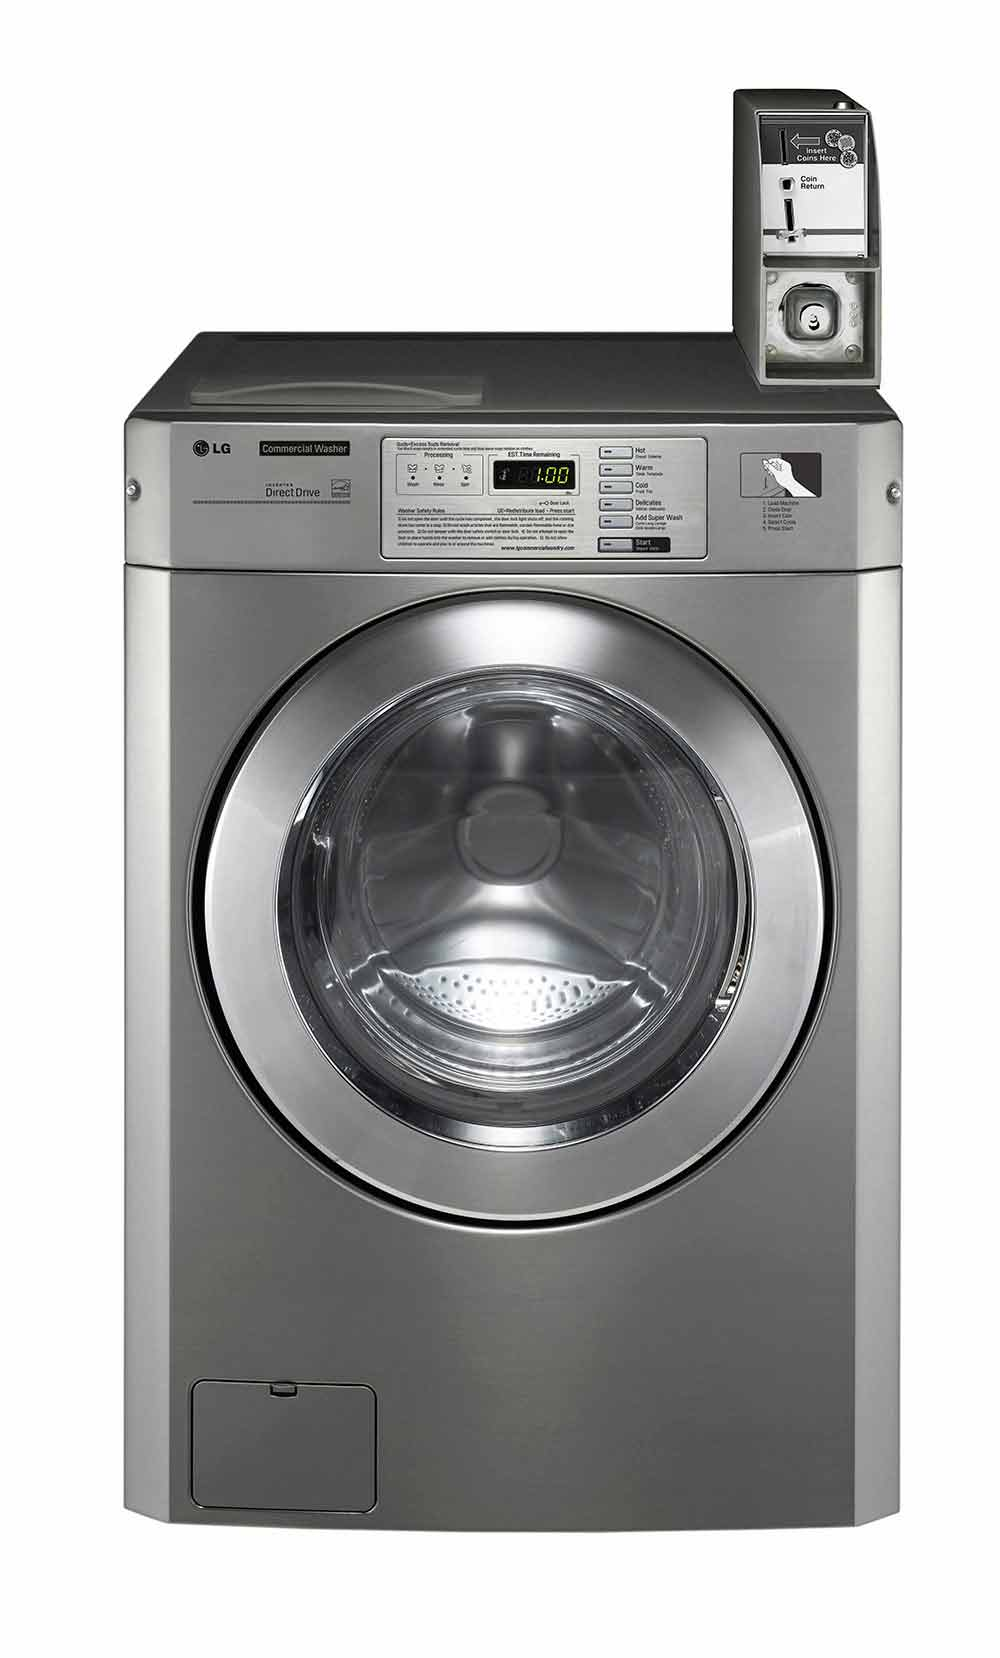 LG Giant-C 22.5 lb Coin Single Washer